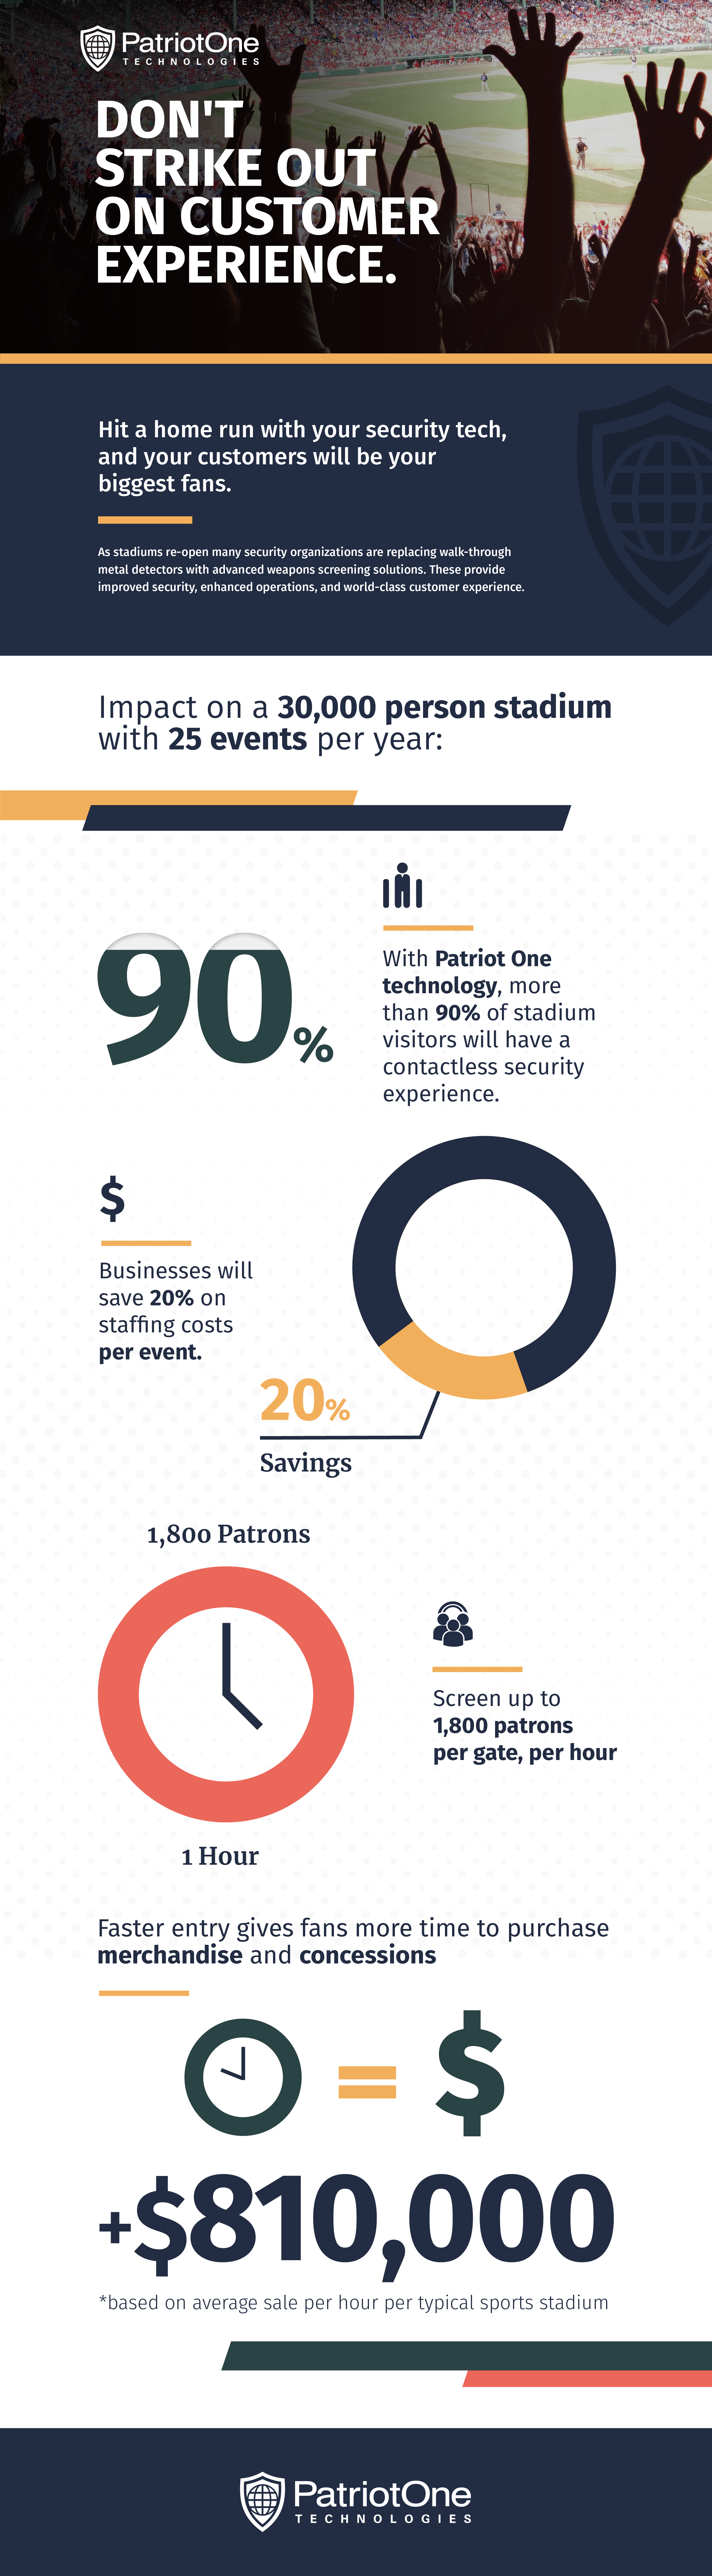 How security tech can impact business